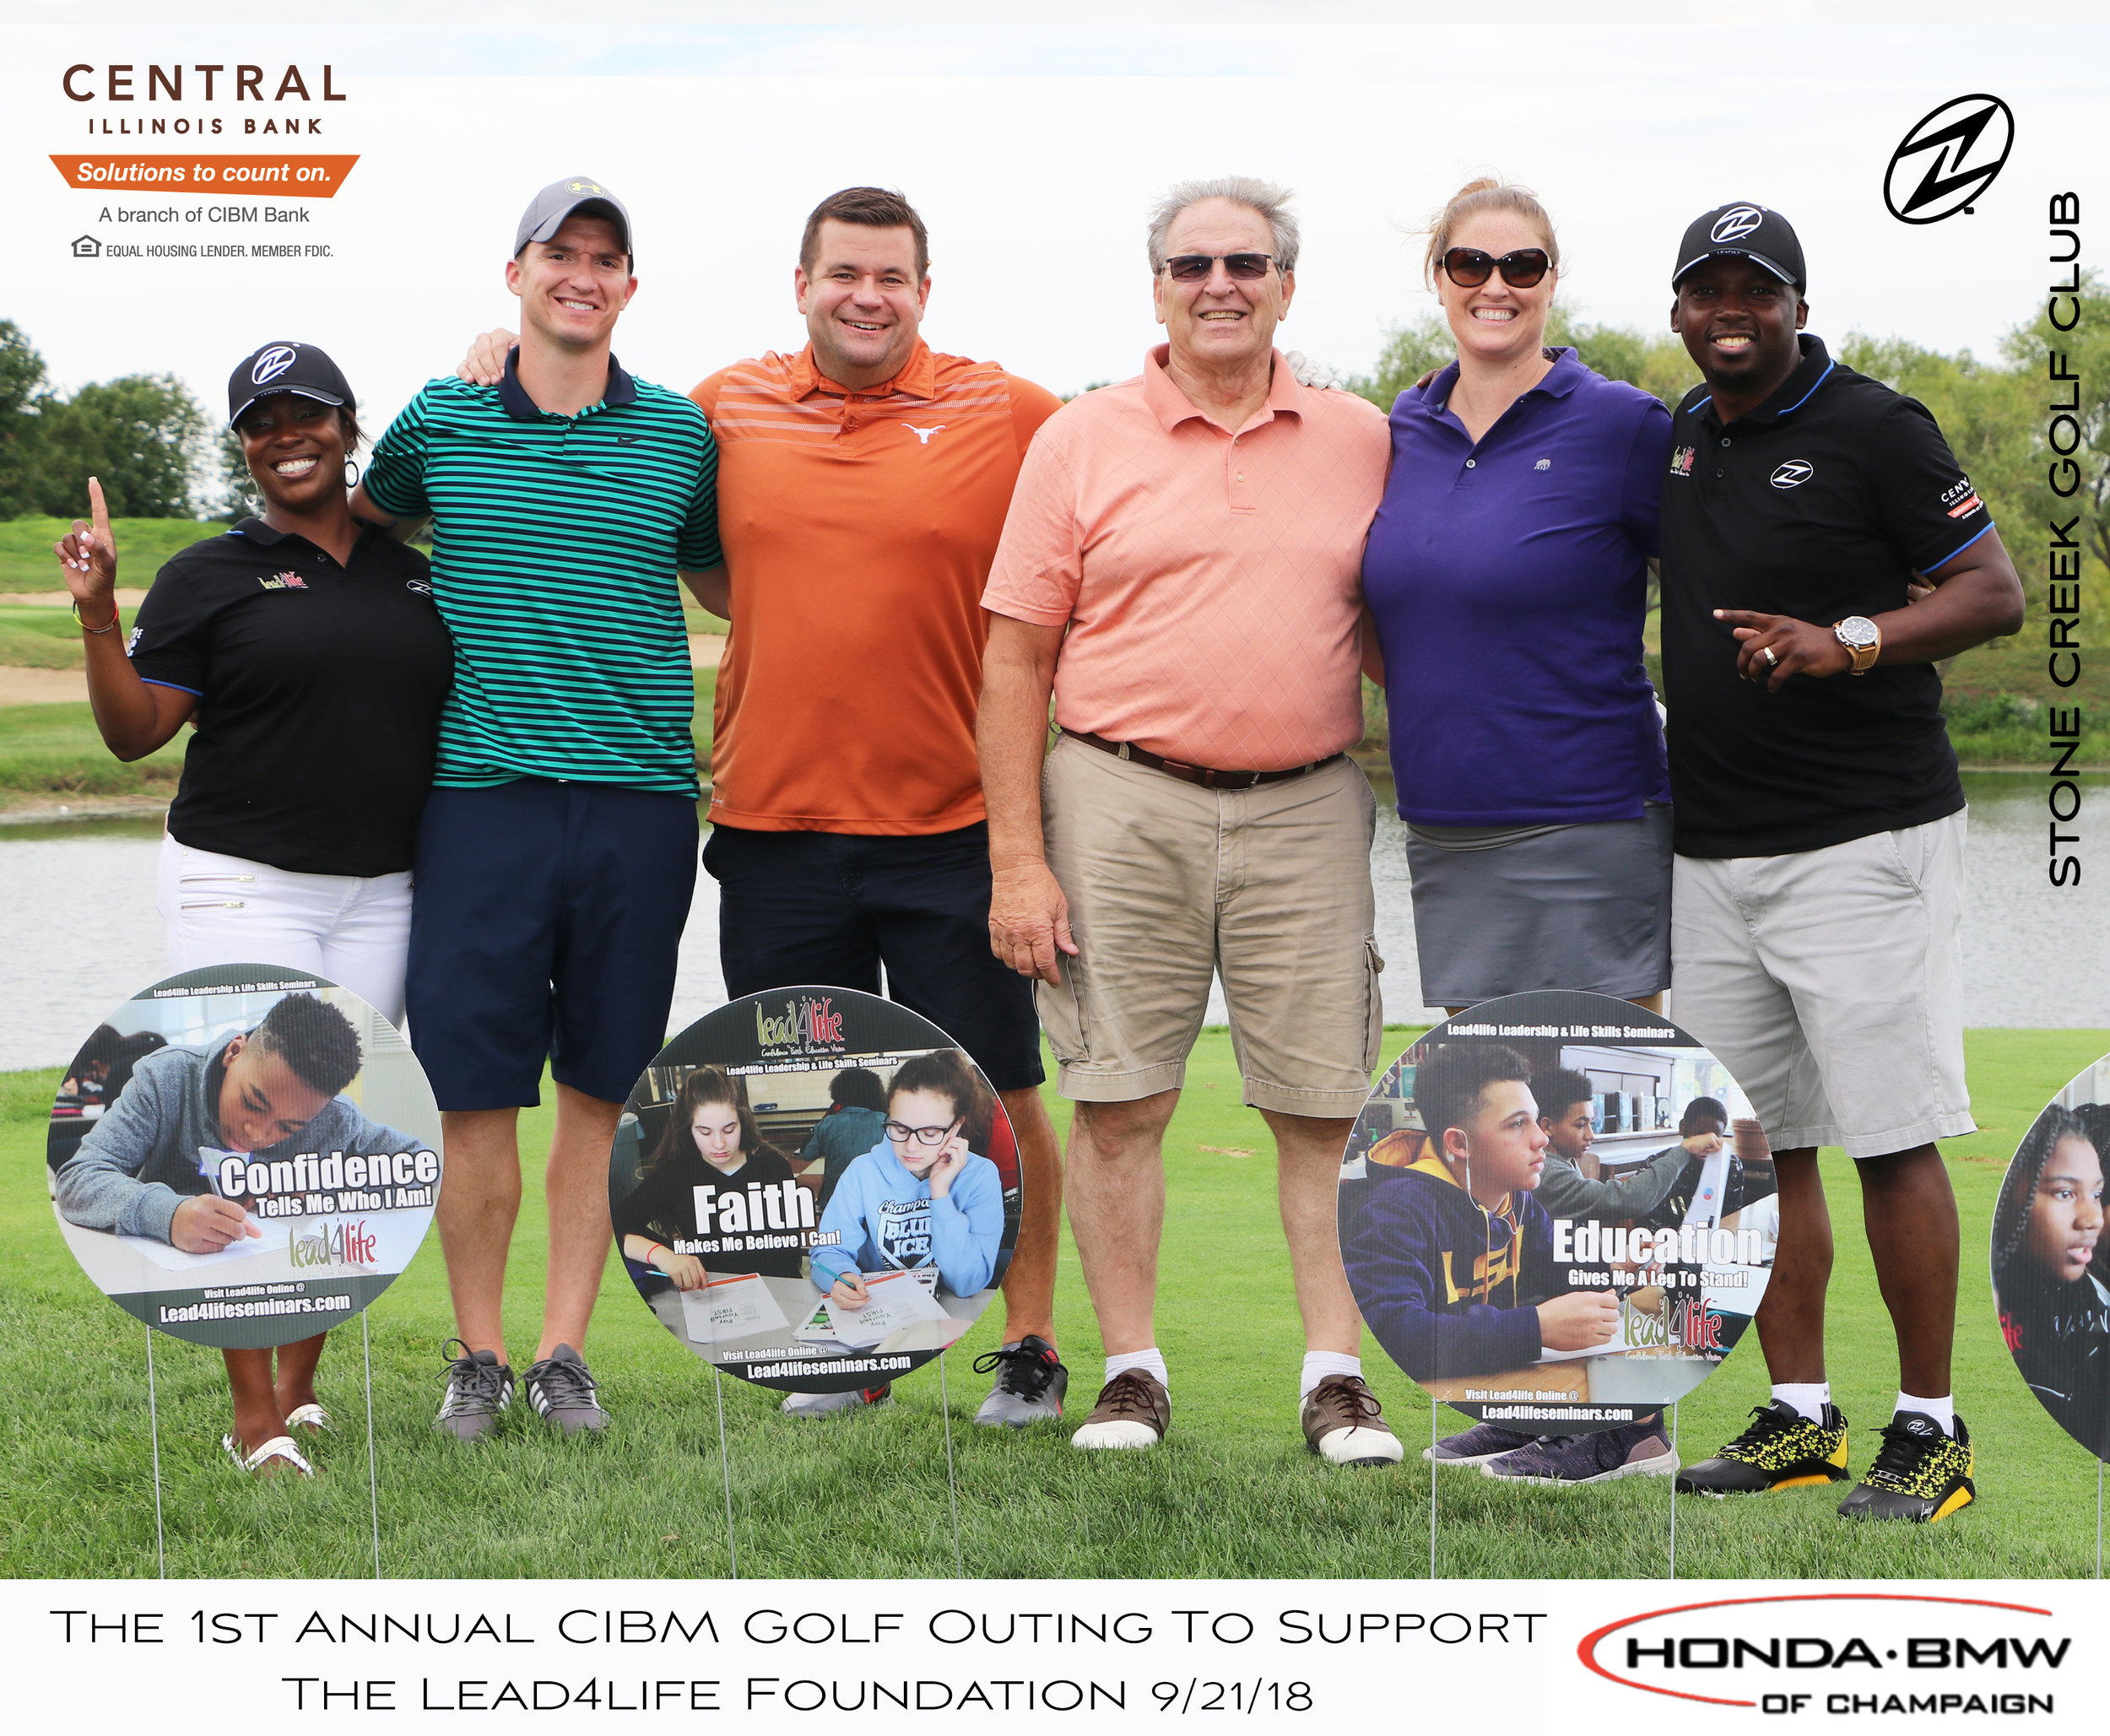 Lead4life Golf Group 9.jpg